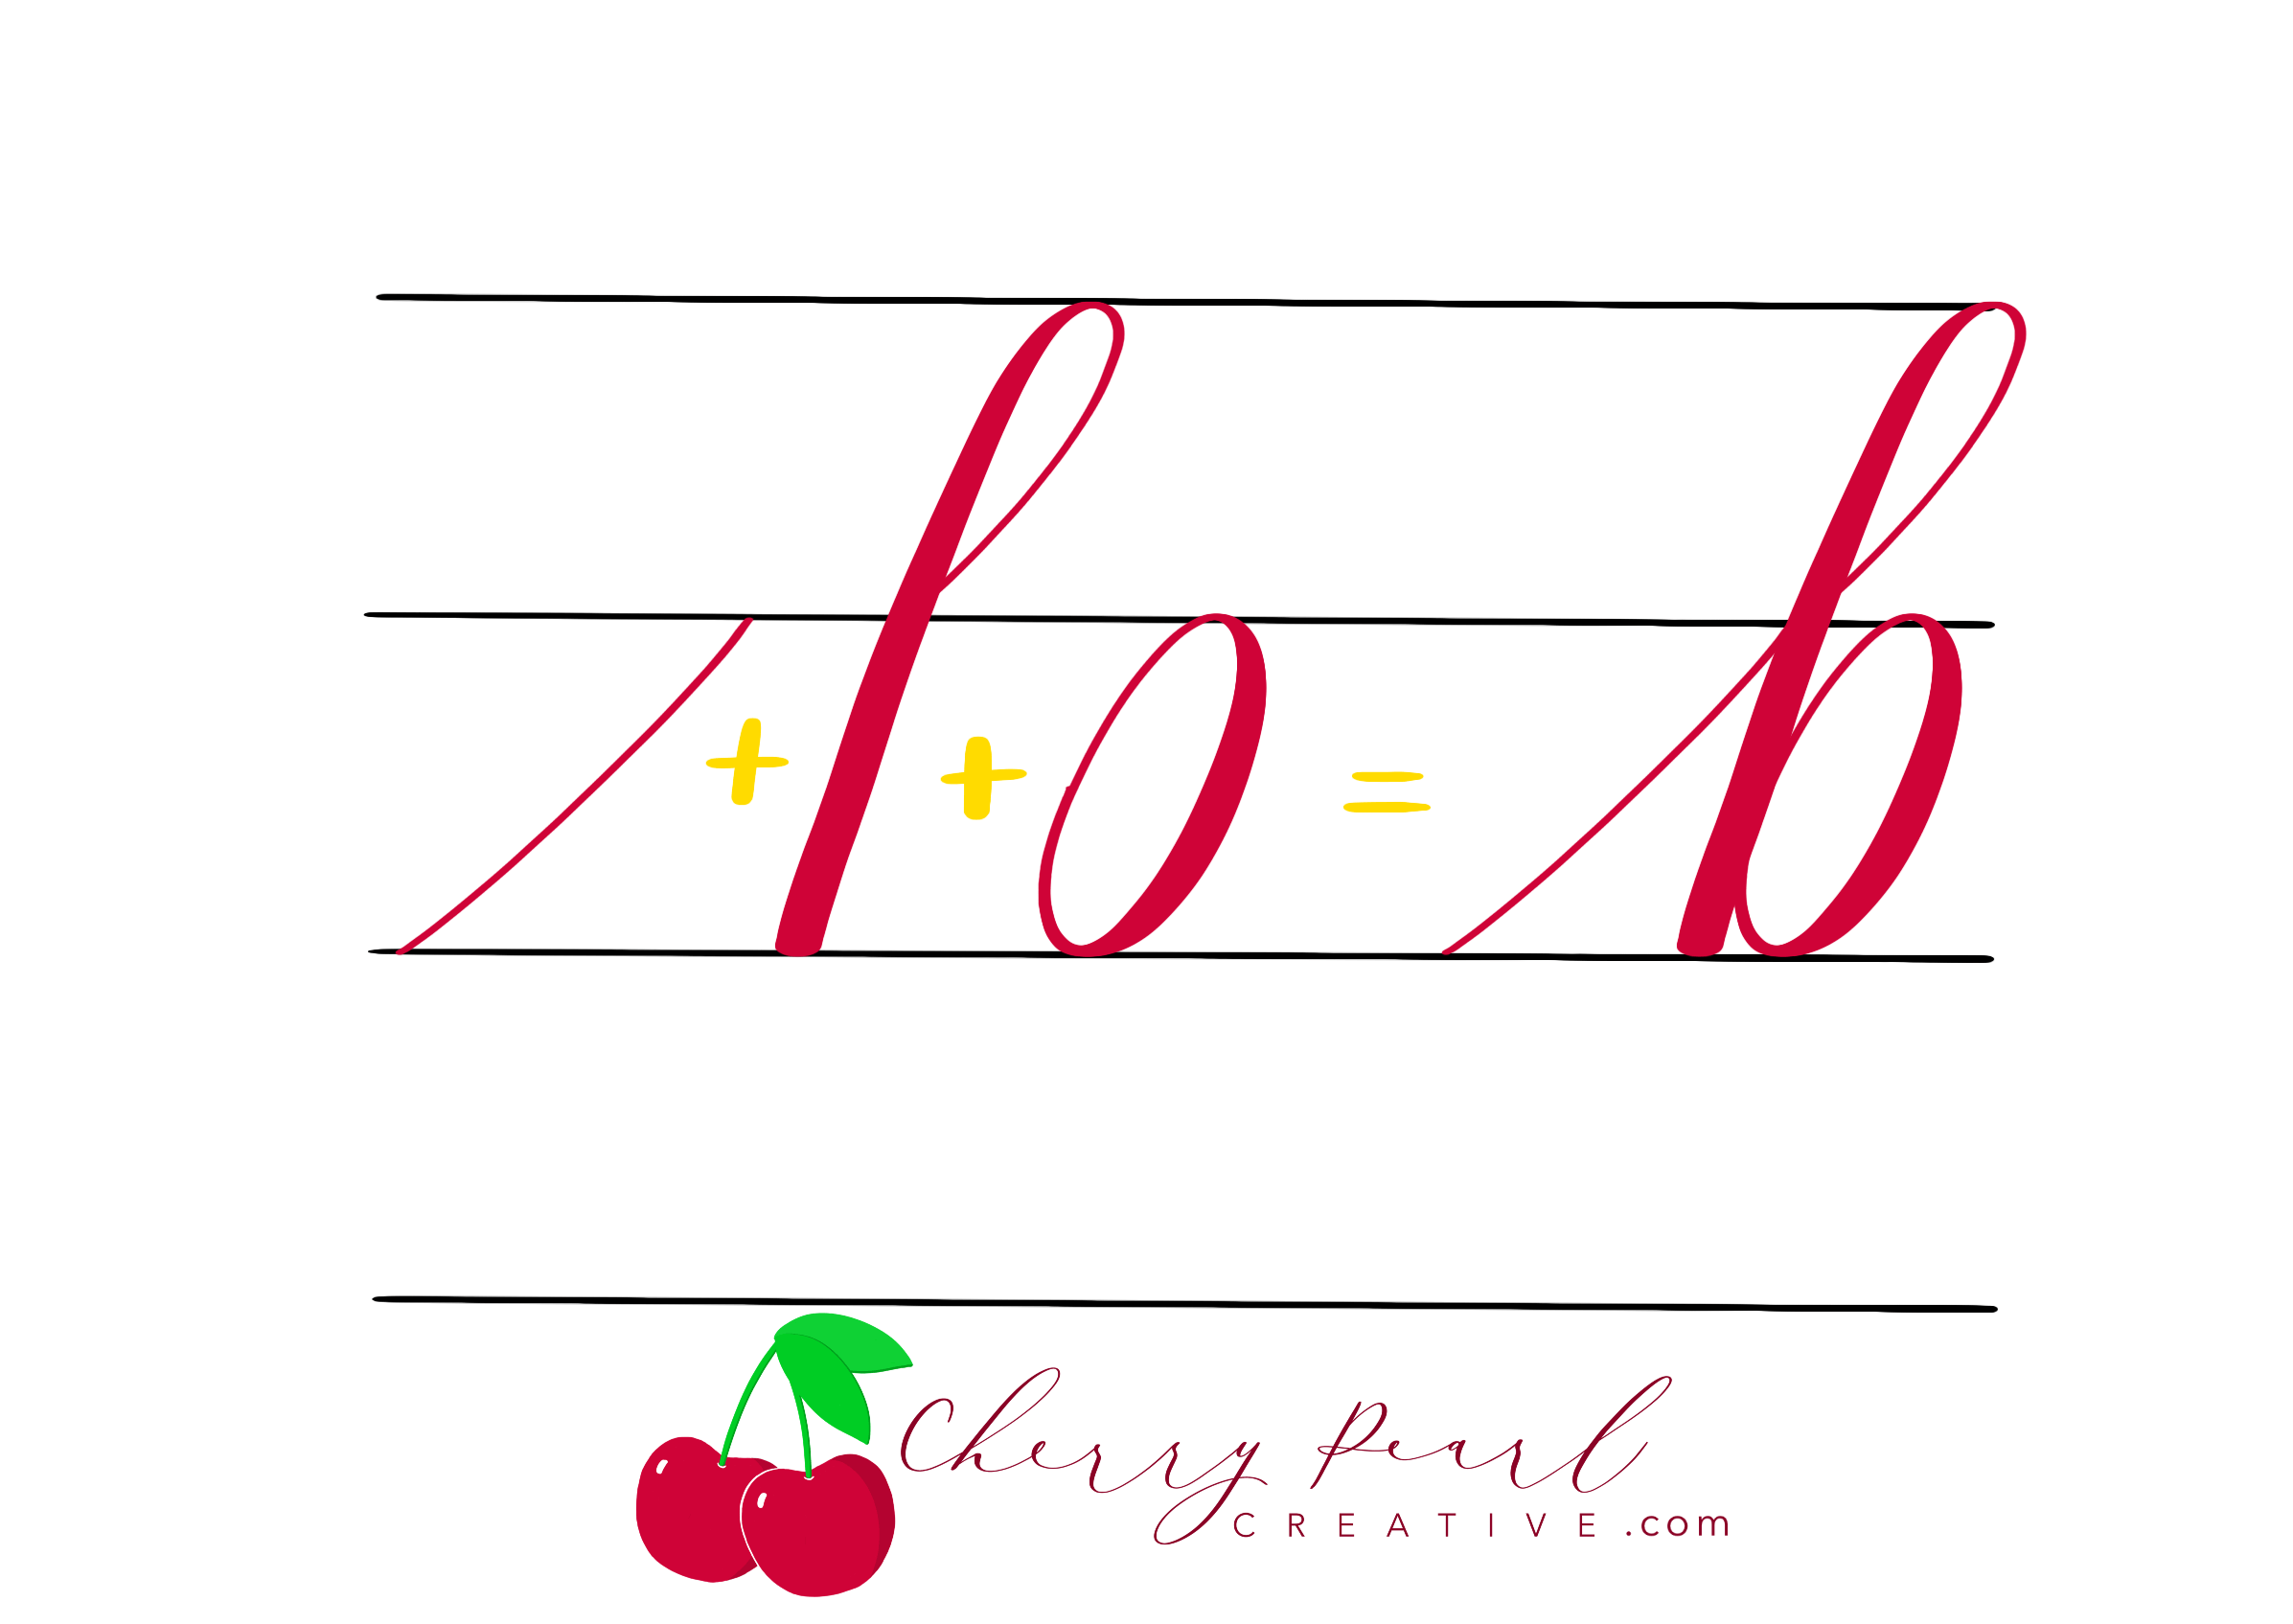 Cherry Pearl Creative - Brush Calligraphy Lowercase b with Basic Strokes